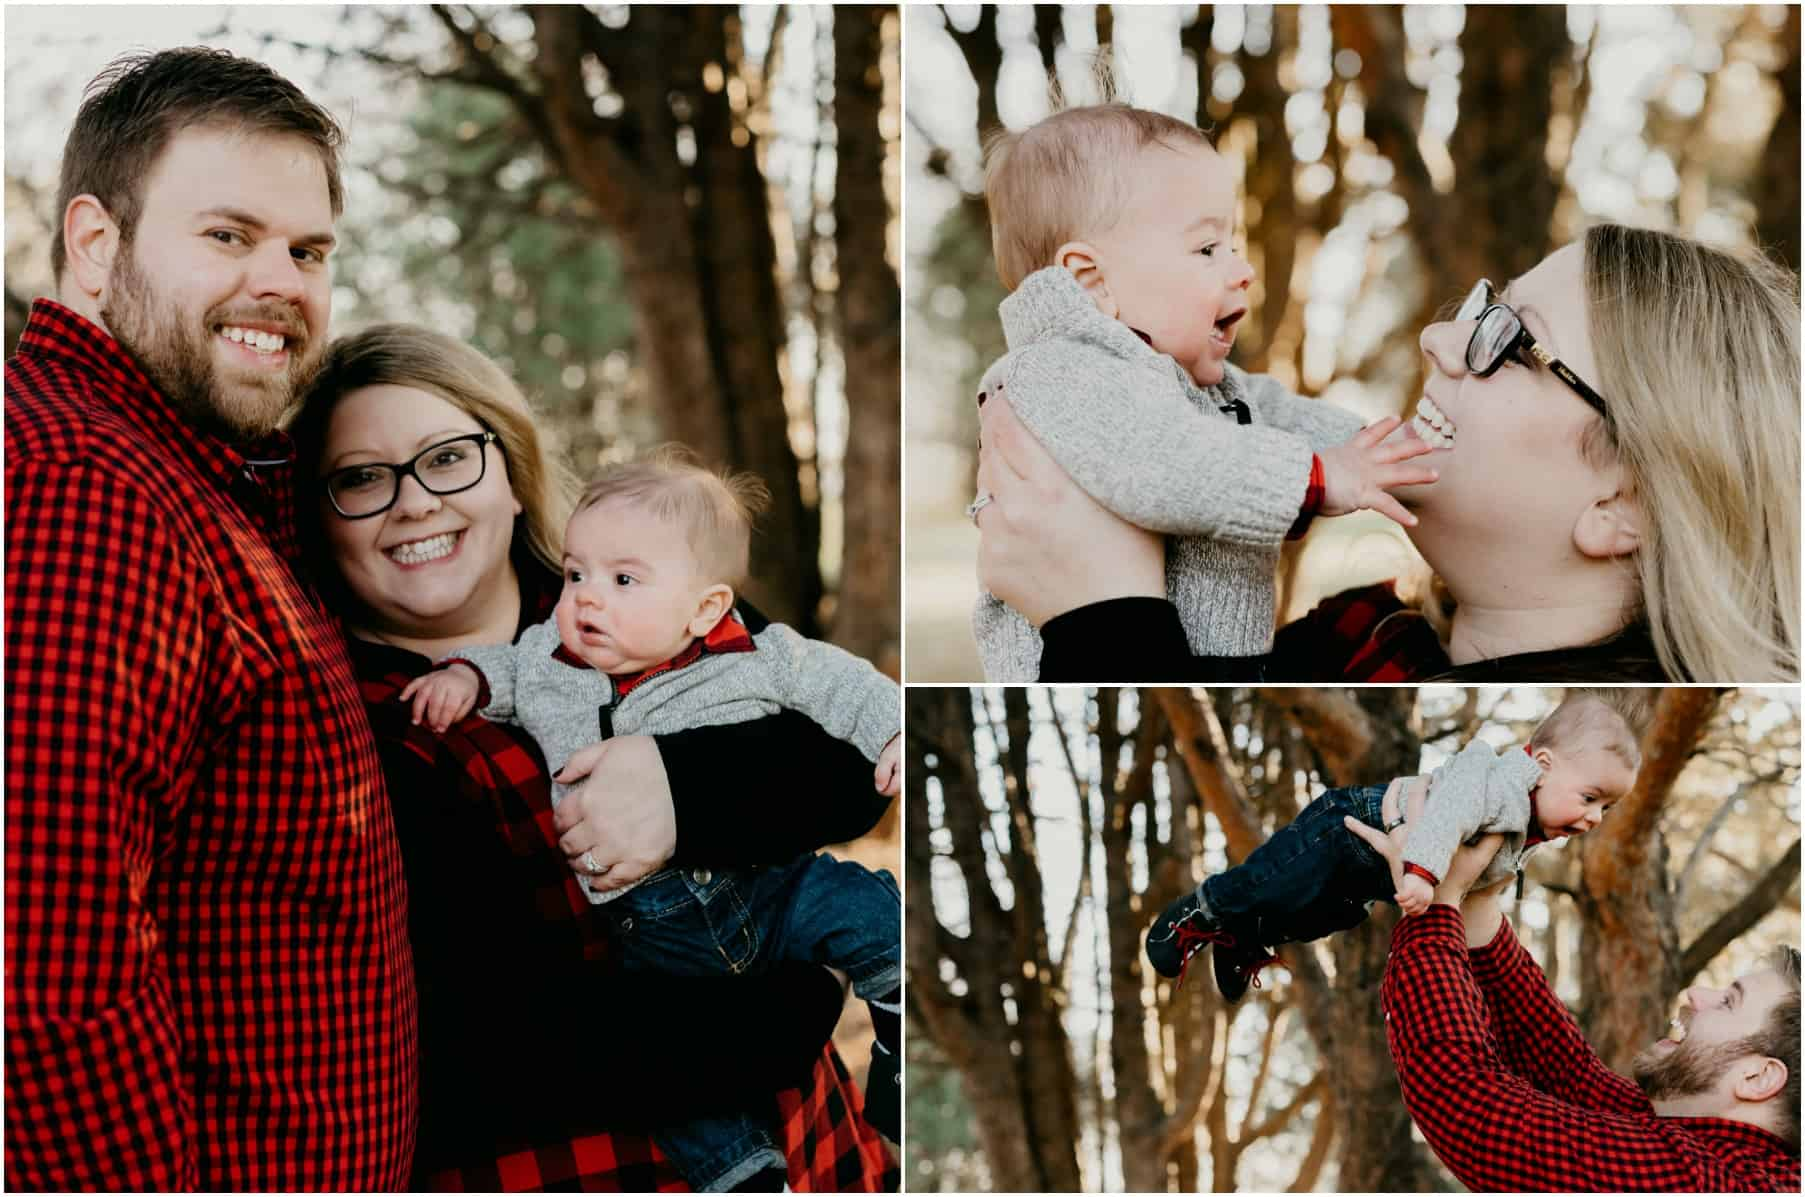 6 month baby winter photos - Philia Kelnhofer